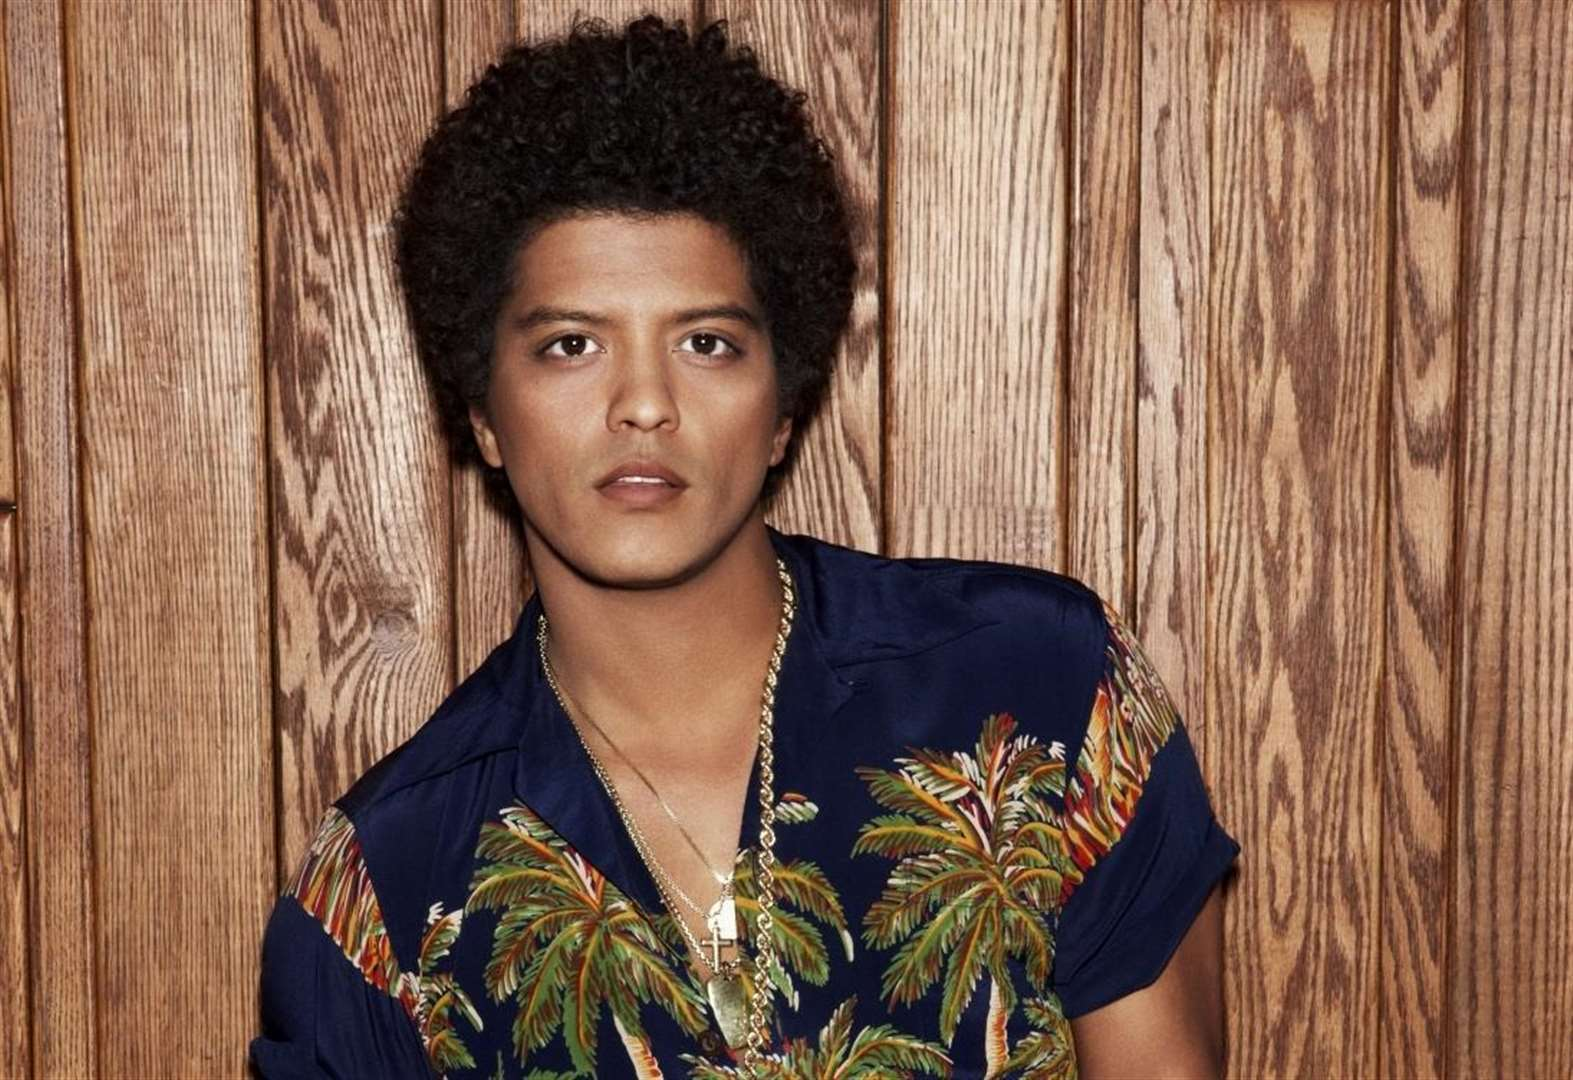 kmfm give away trip to see Bruno Mars in LA